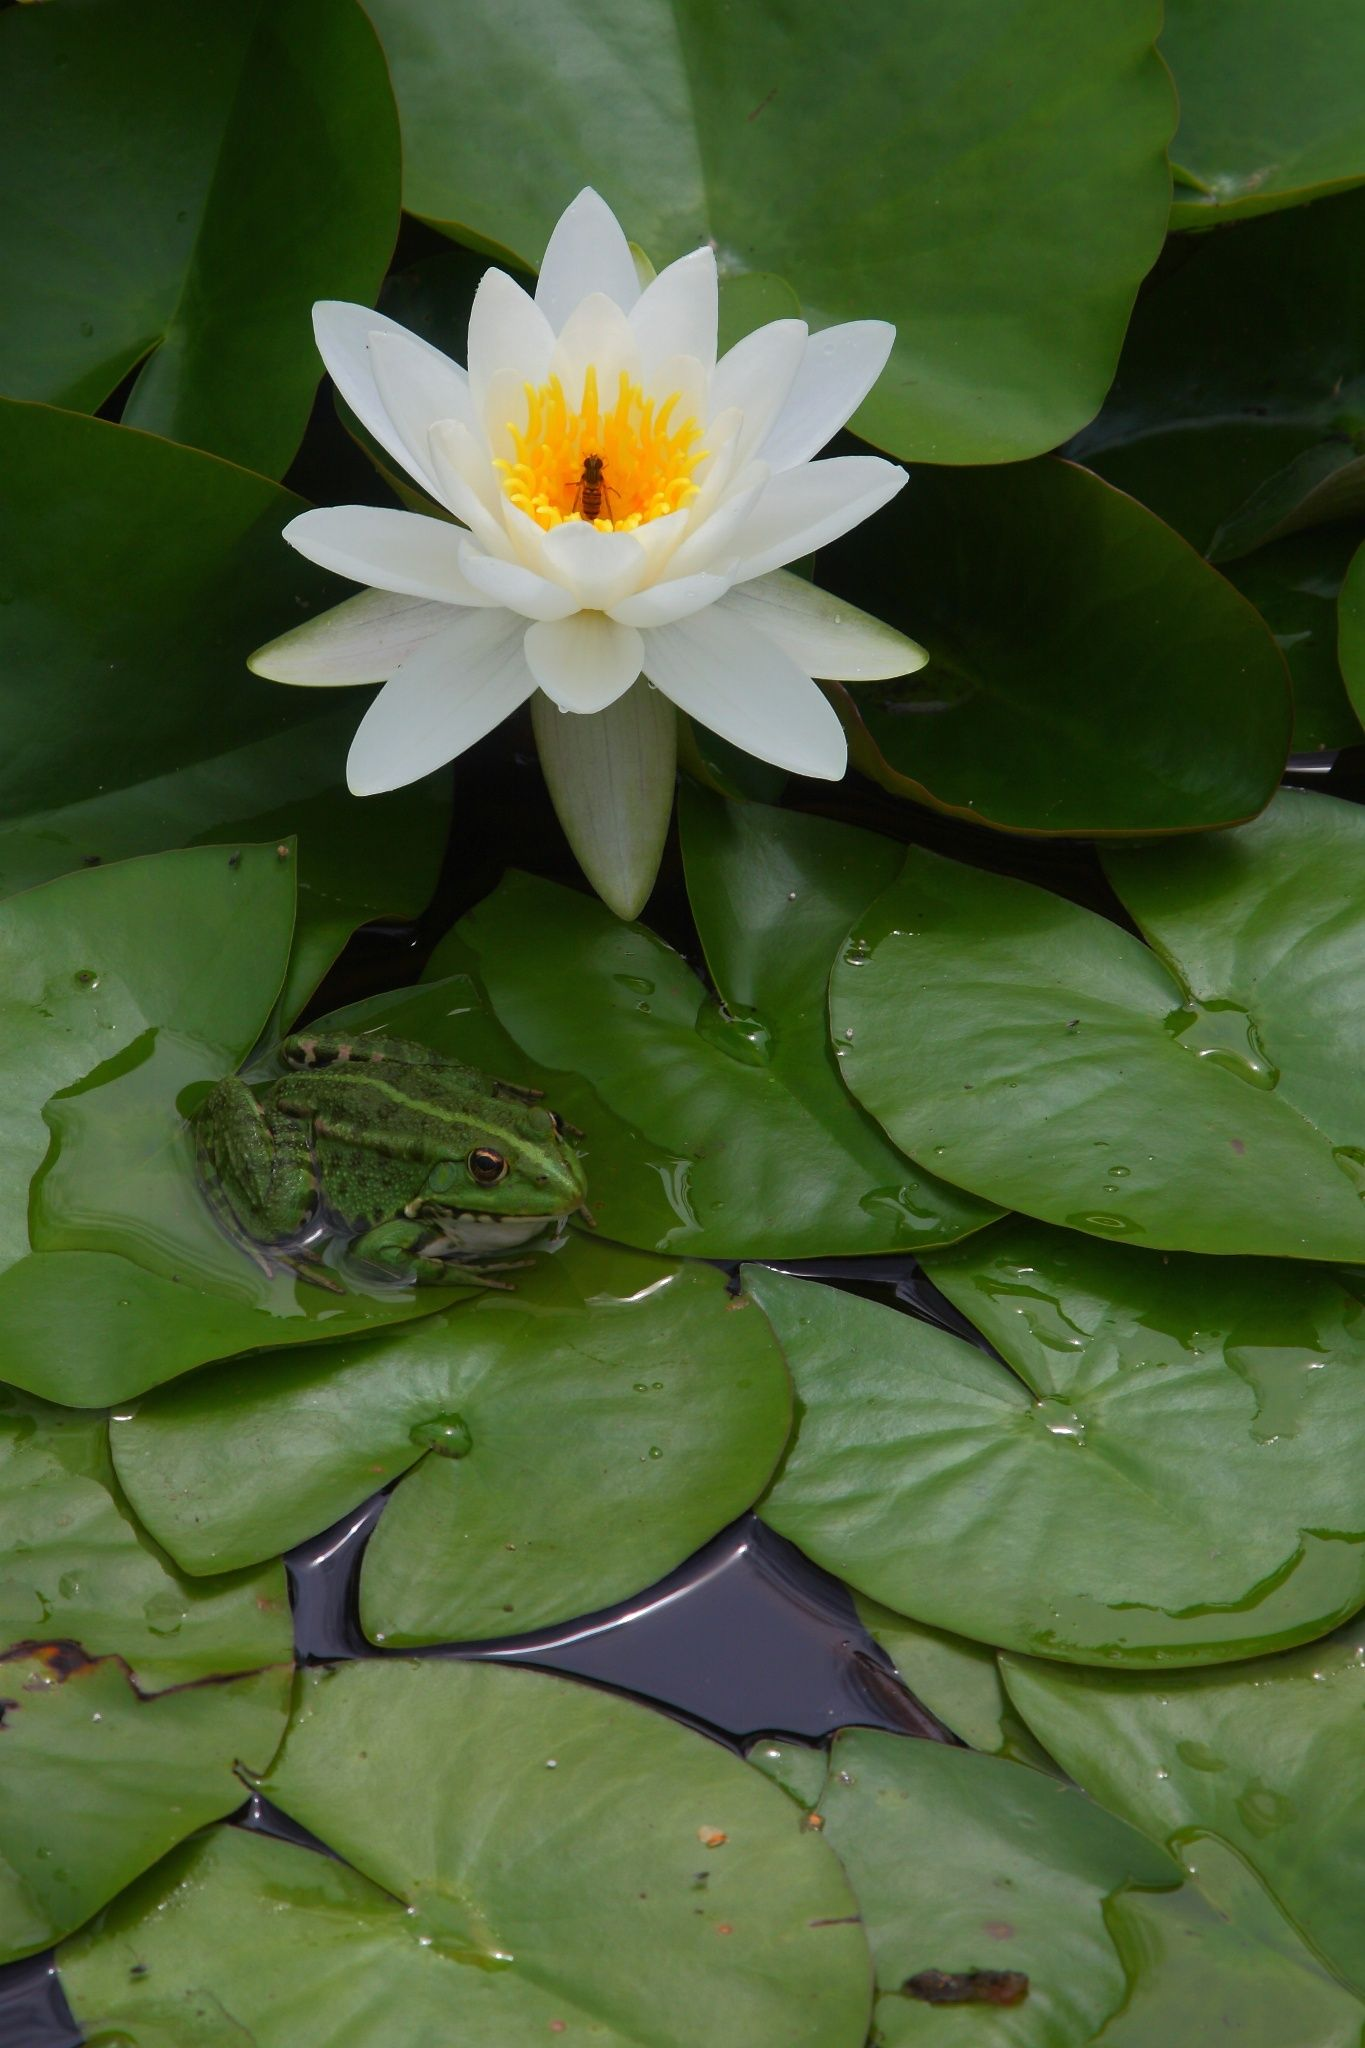 The prince and lily by lieve marchal on 500px places to visit the prince and lily by lieve marchal on 500px izmirmasajfo